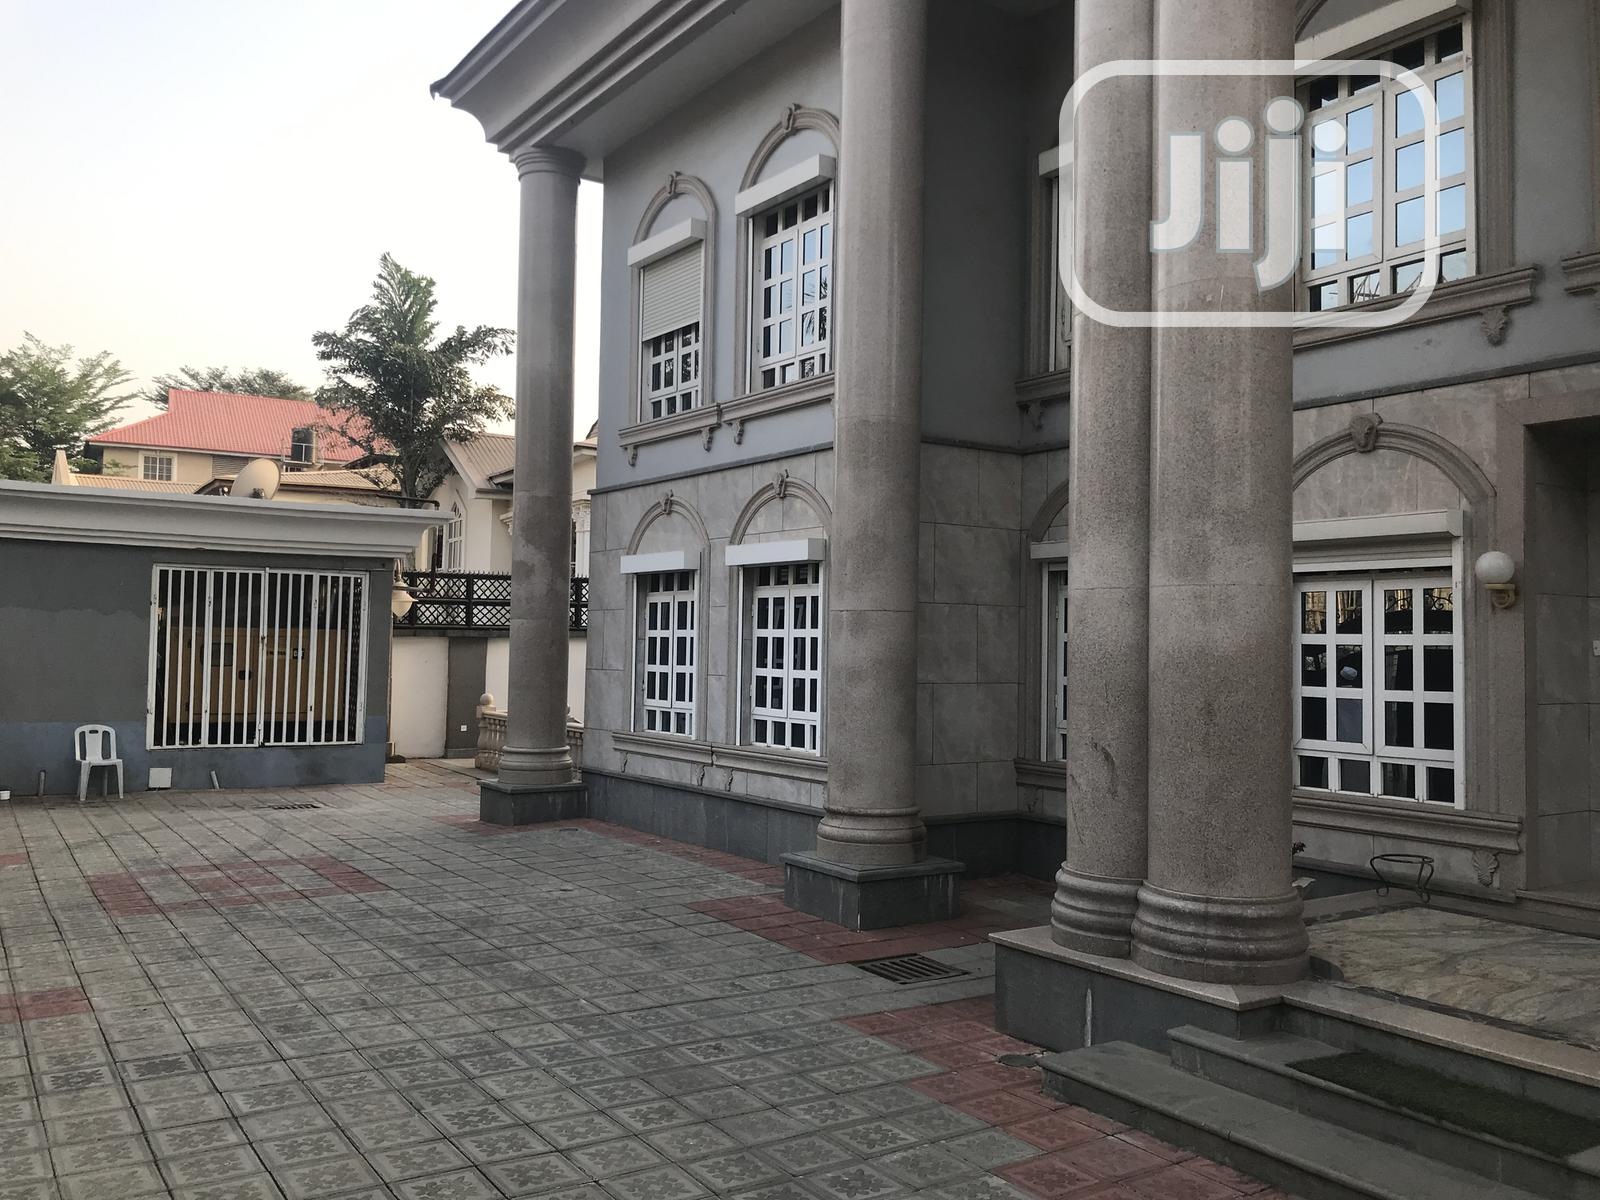 Mansion With Swimming Pool for Sale in Maitama, Abuja   Houses & Apartments For Sale for sale in Maitama, Abuja (FCT) State, Nigeria